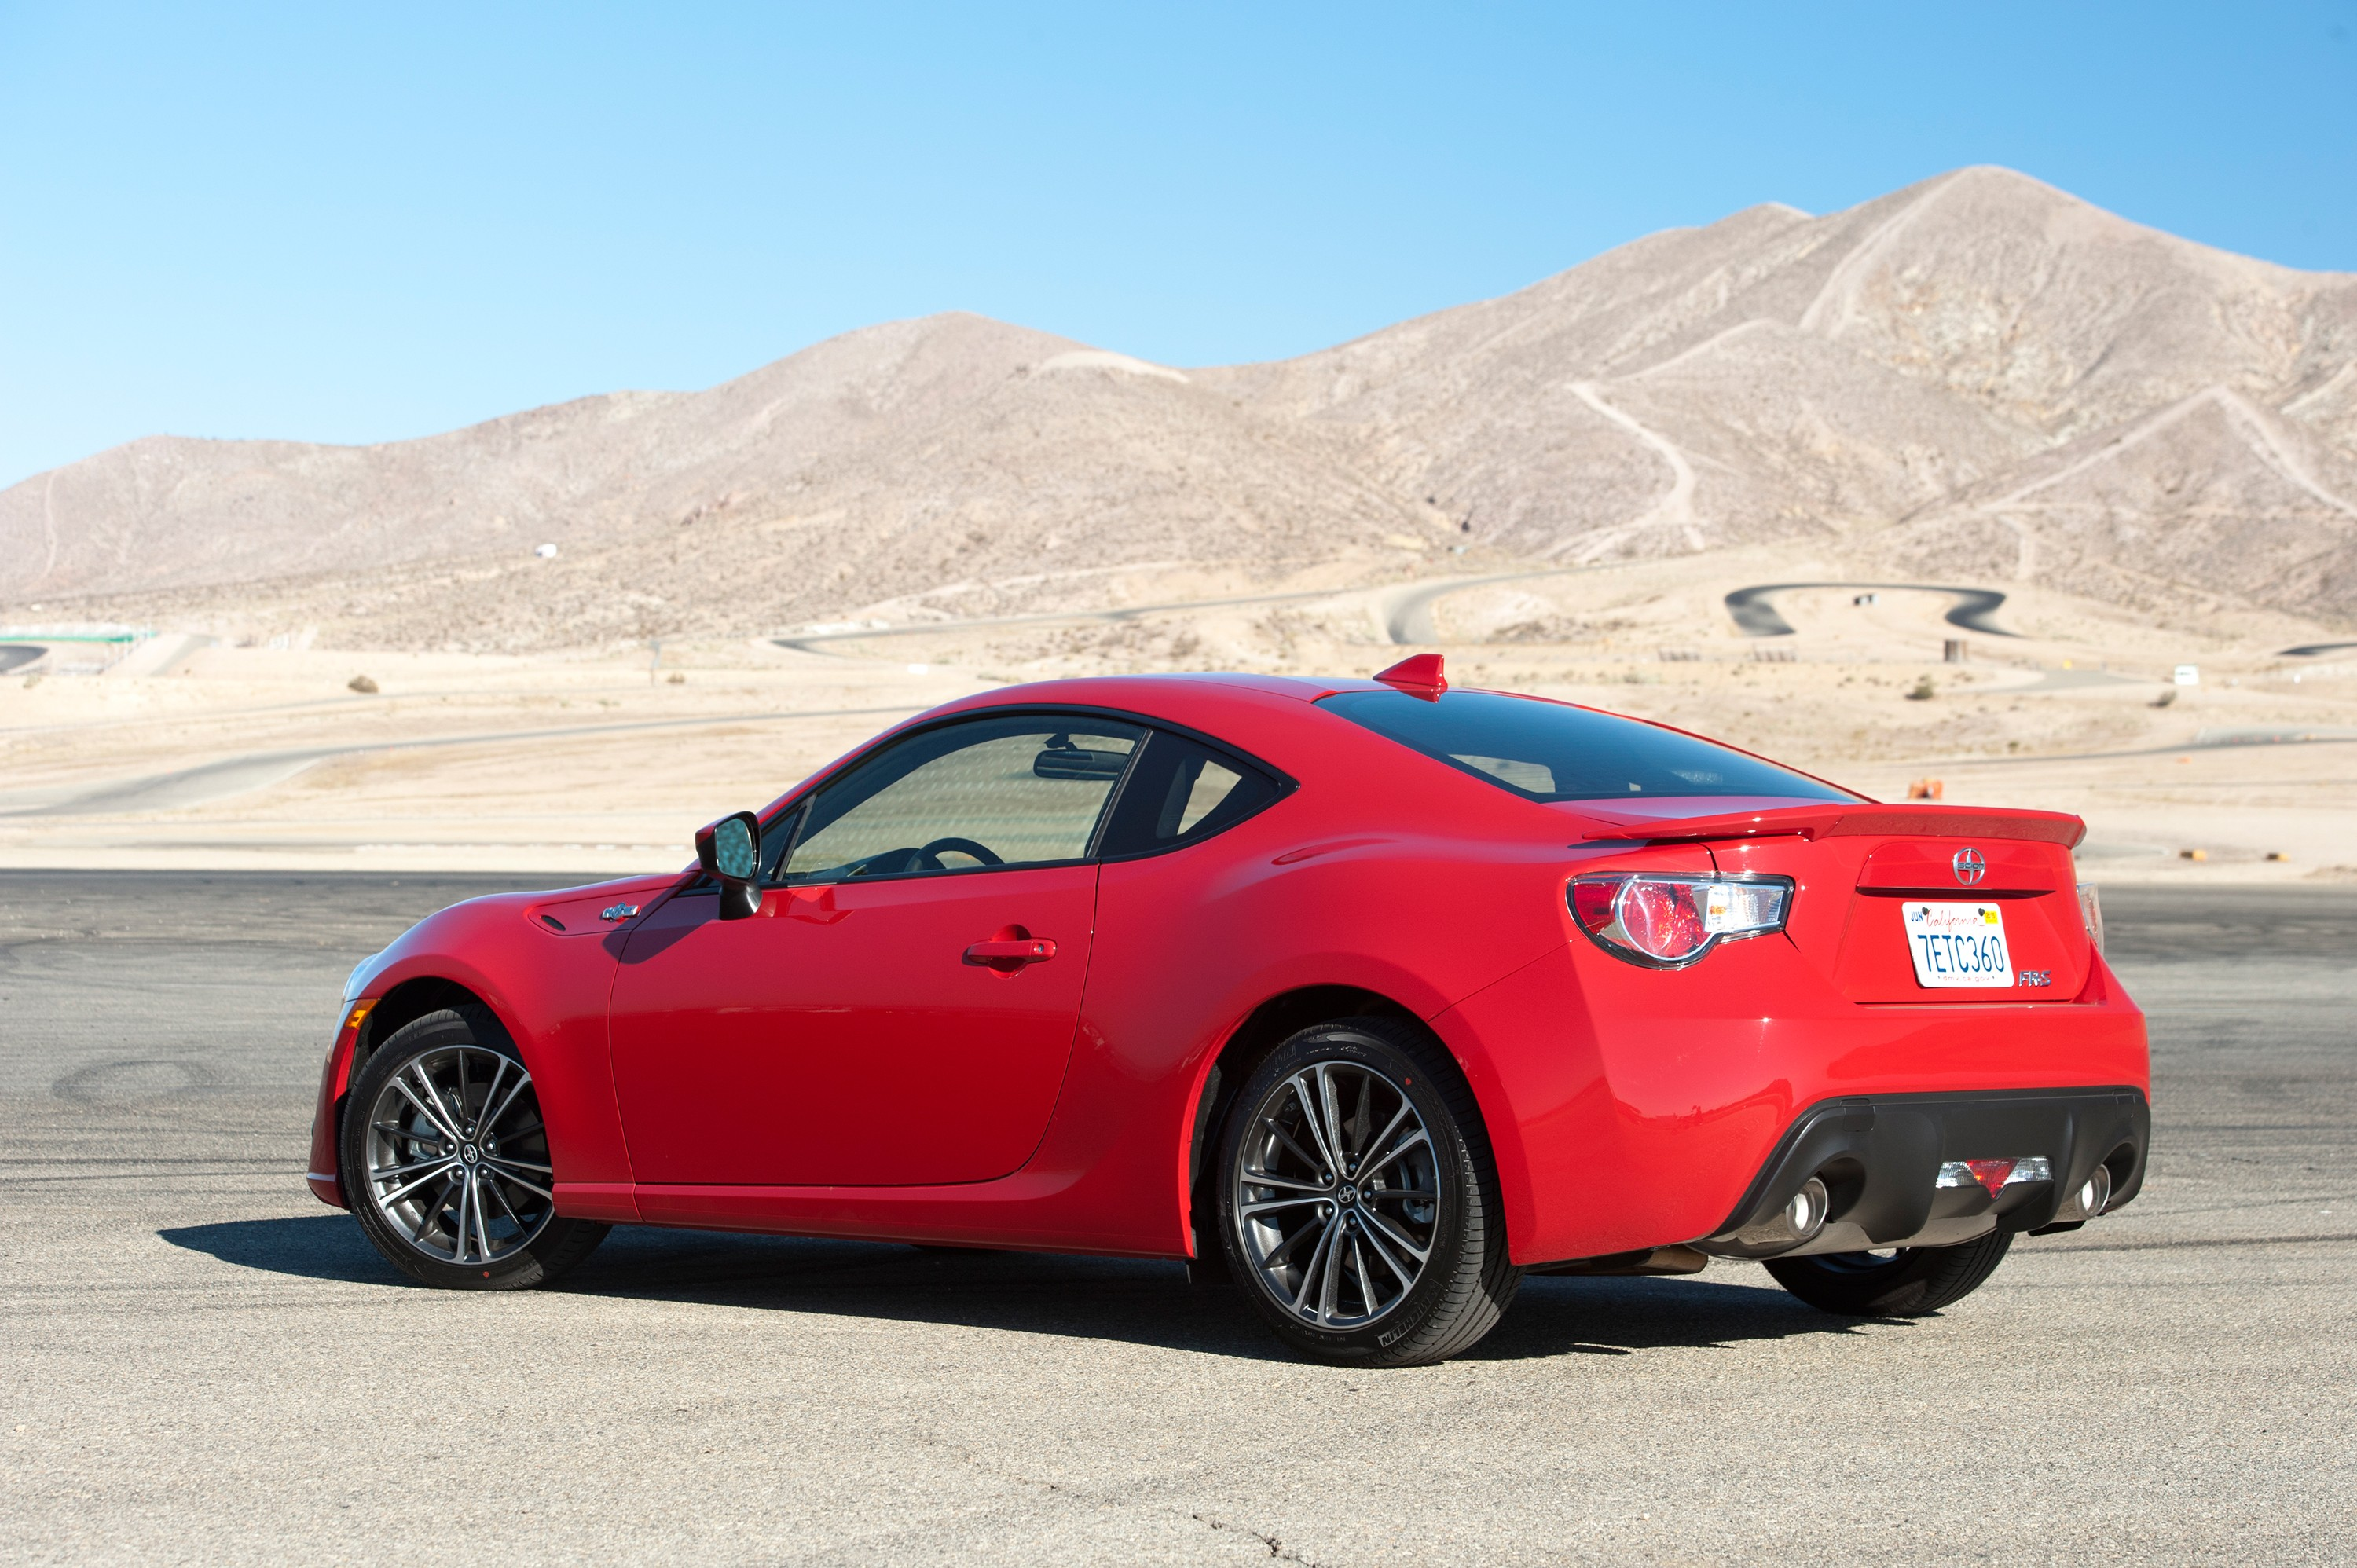 2016 Scion FR-S Launched With Minor Upgrades - autoevolution